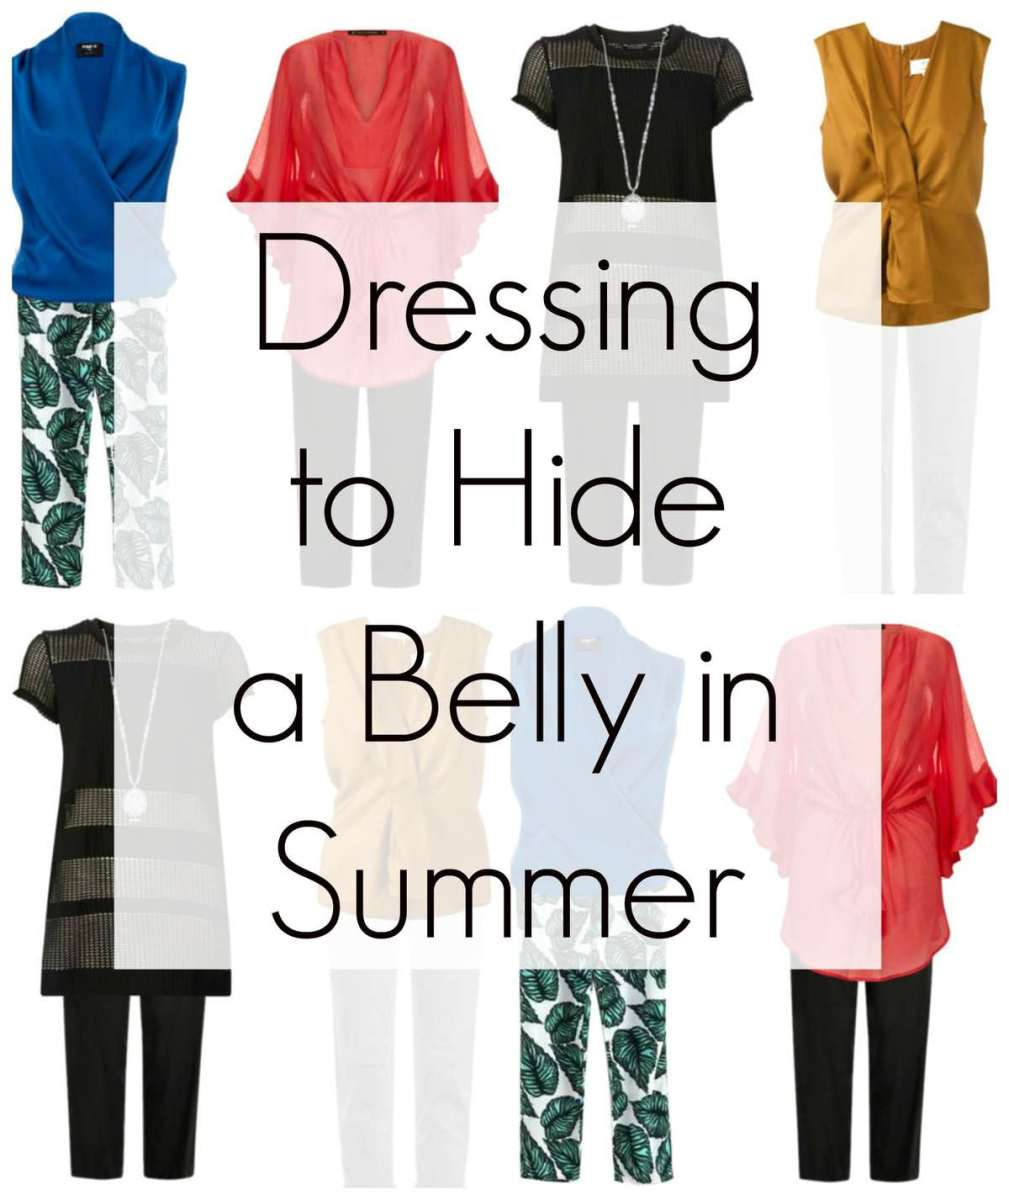 Dressing to Disguise a Belly in Summer